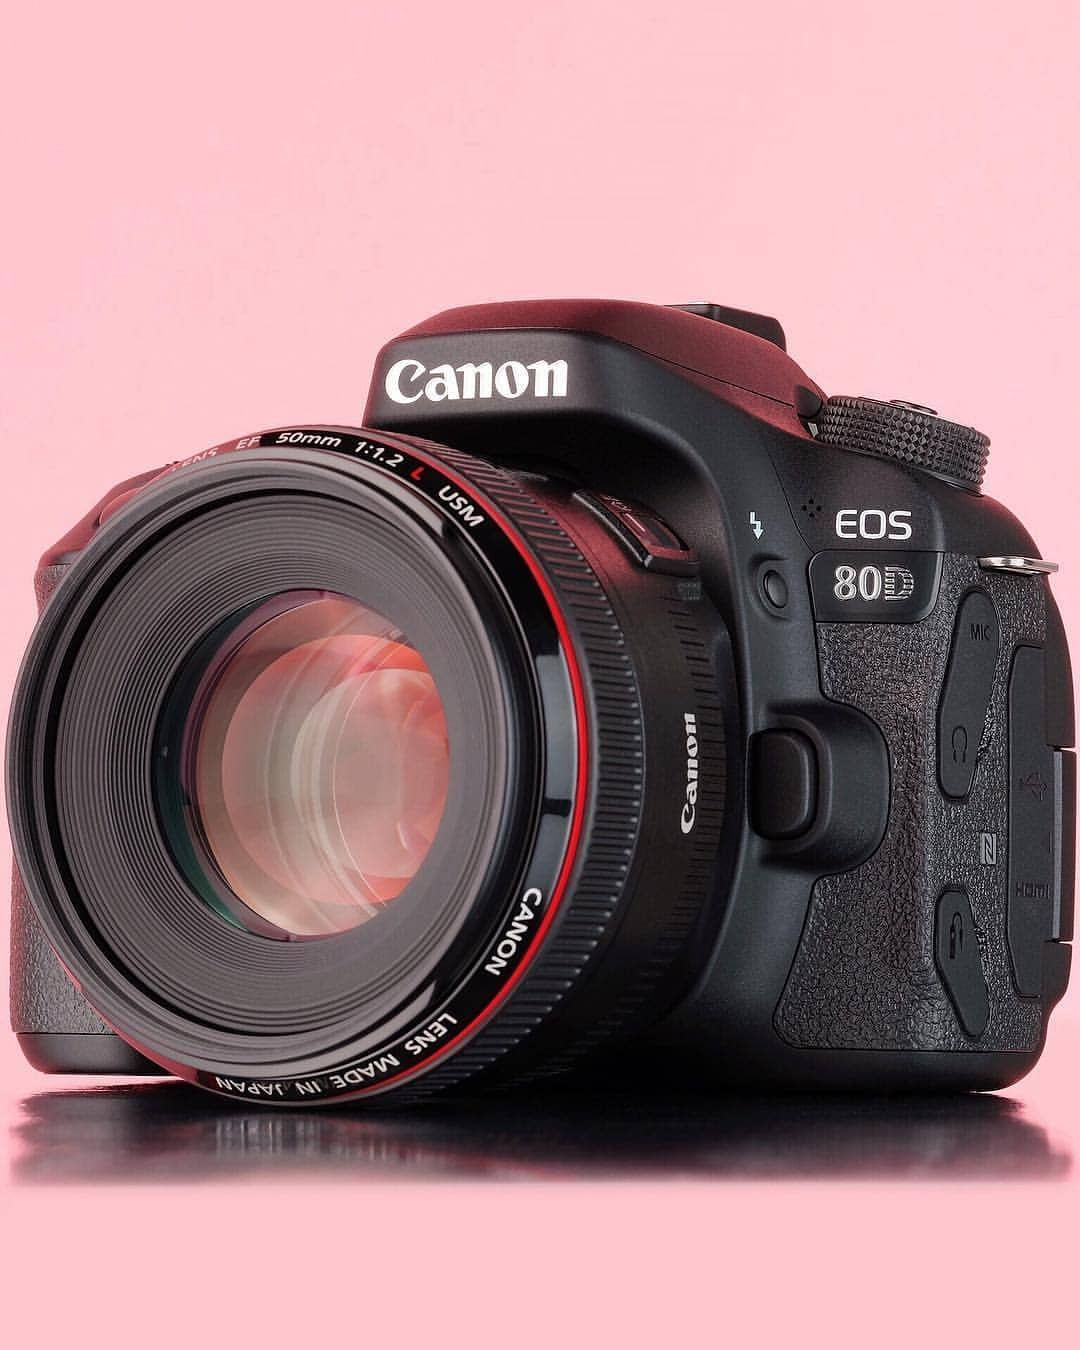 The Canon Eos 80d Is Amazing For Vlogging And It Has Slow Motion Too To Some Extent Credits Canon Camera Canon Dslr Lenses Best Camera For Photography